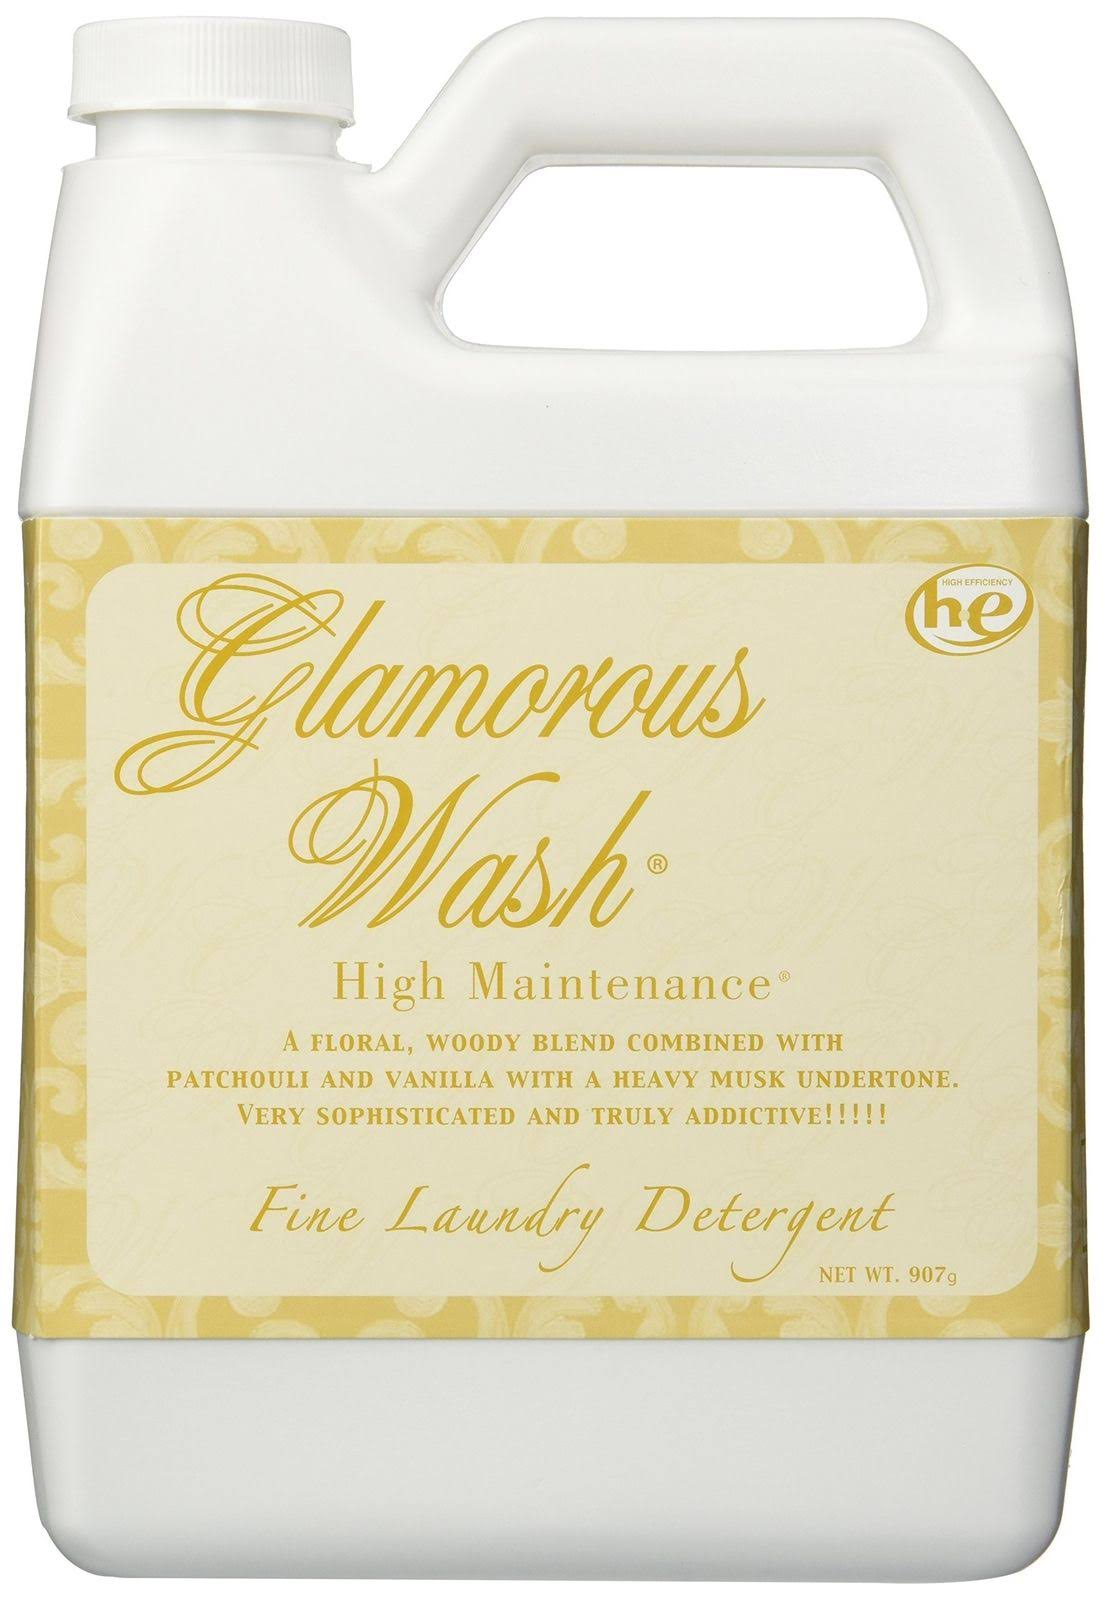 Tyler Glamour Wash Laundry Detergent - High Maintenance, 32oz